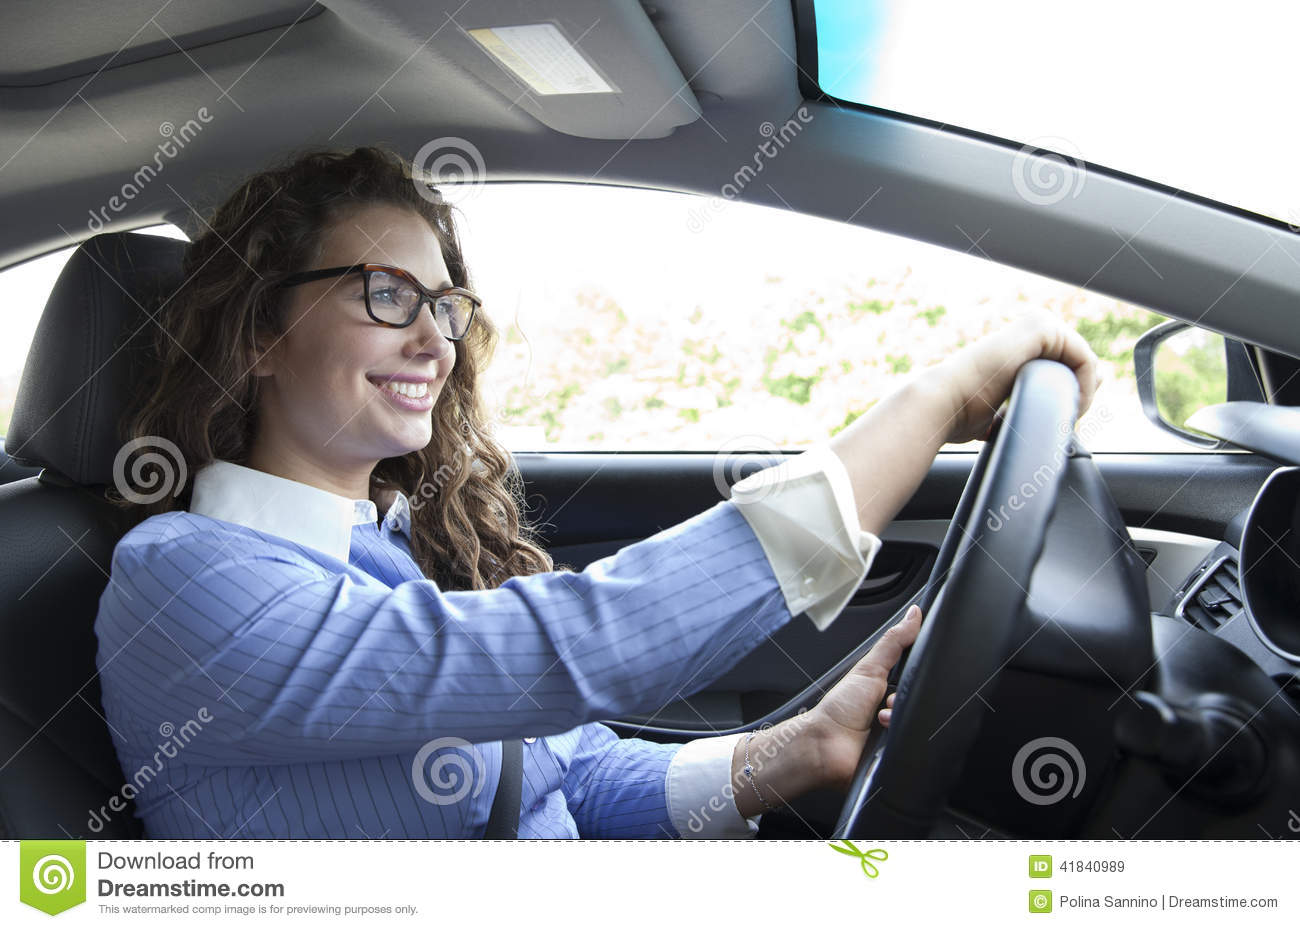 Driving To Work Stock Photo - Image: 41840989